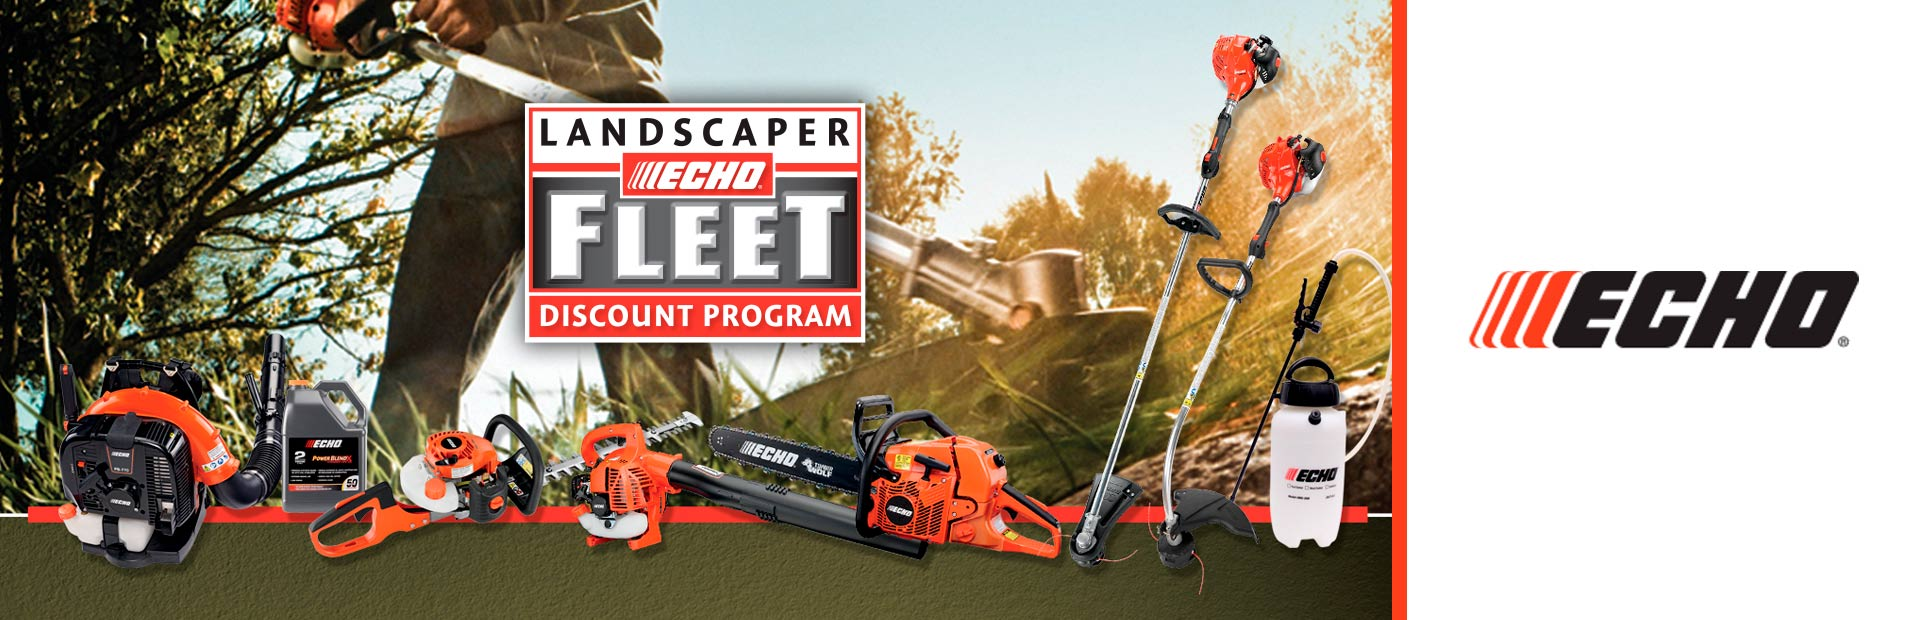 Landscaper Echo Freet Discount Program